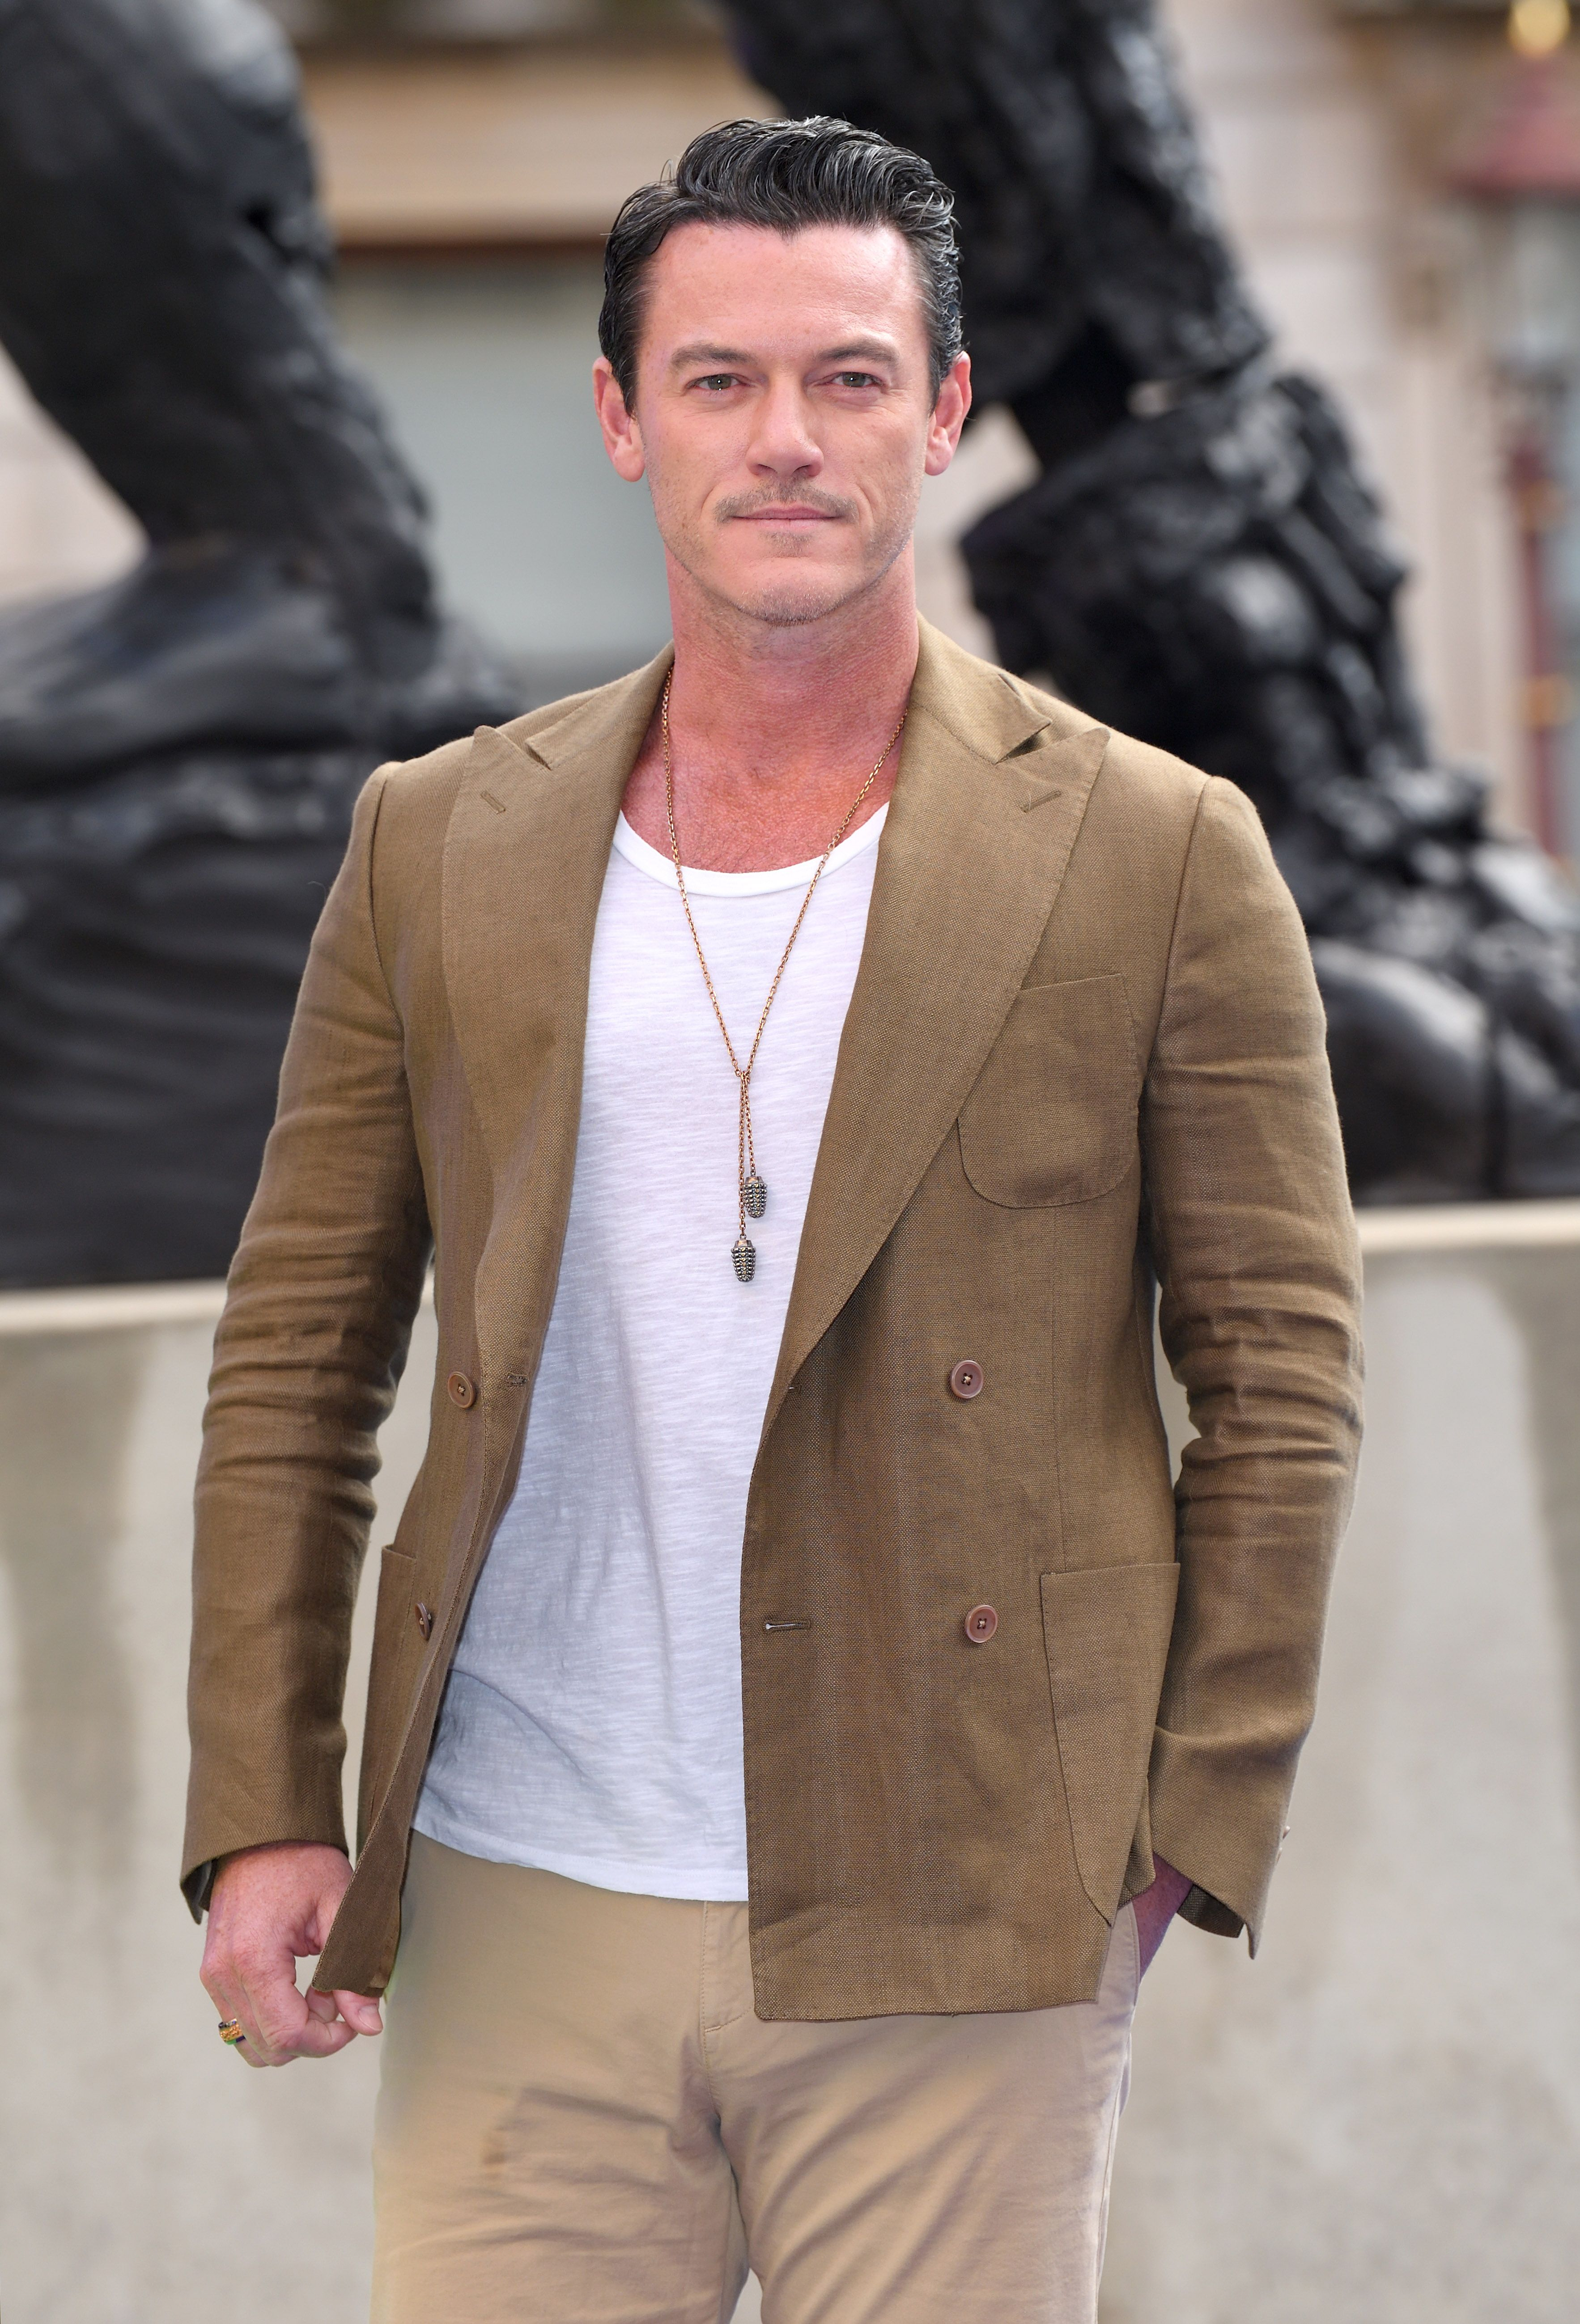 Luke Evans Wants to Know What Fans Thought of His Controversial Full Frontal Scene in 'Ma'